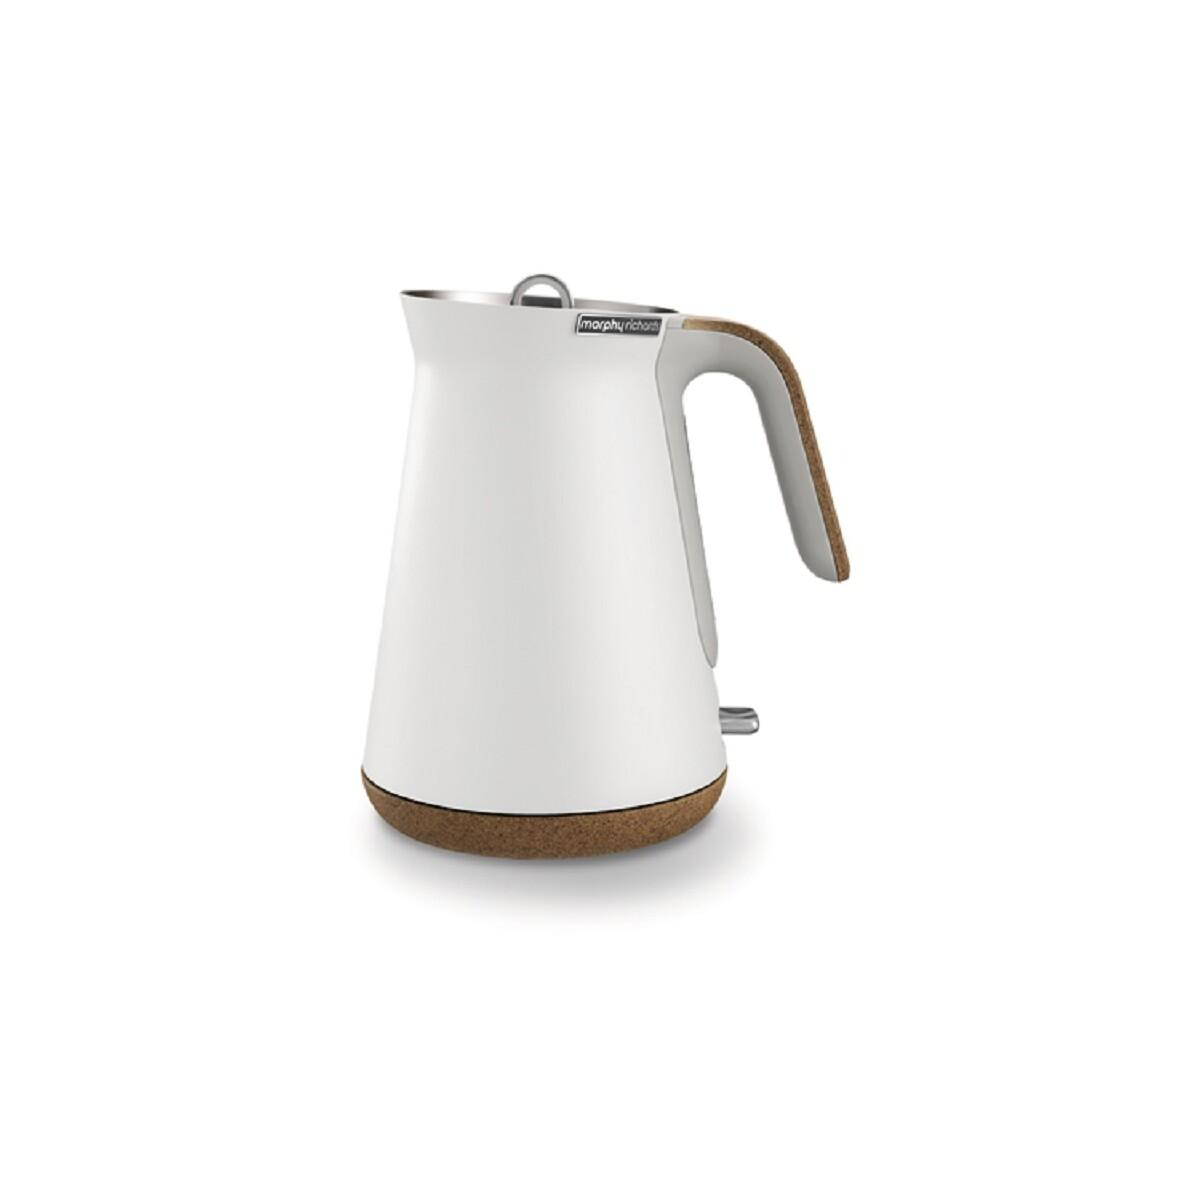 Morphy Richard's Cork Kettle 1.7 L – White